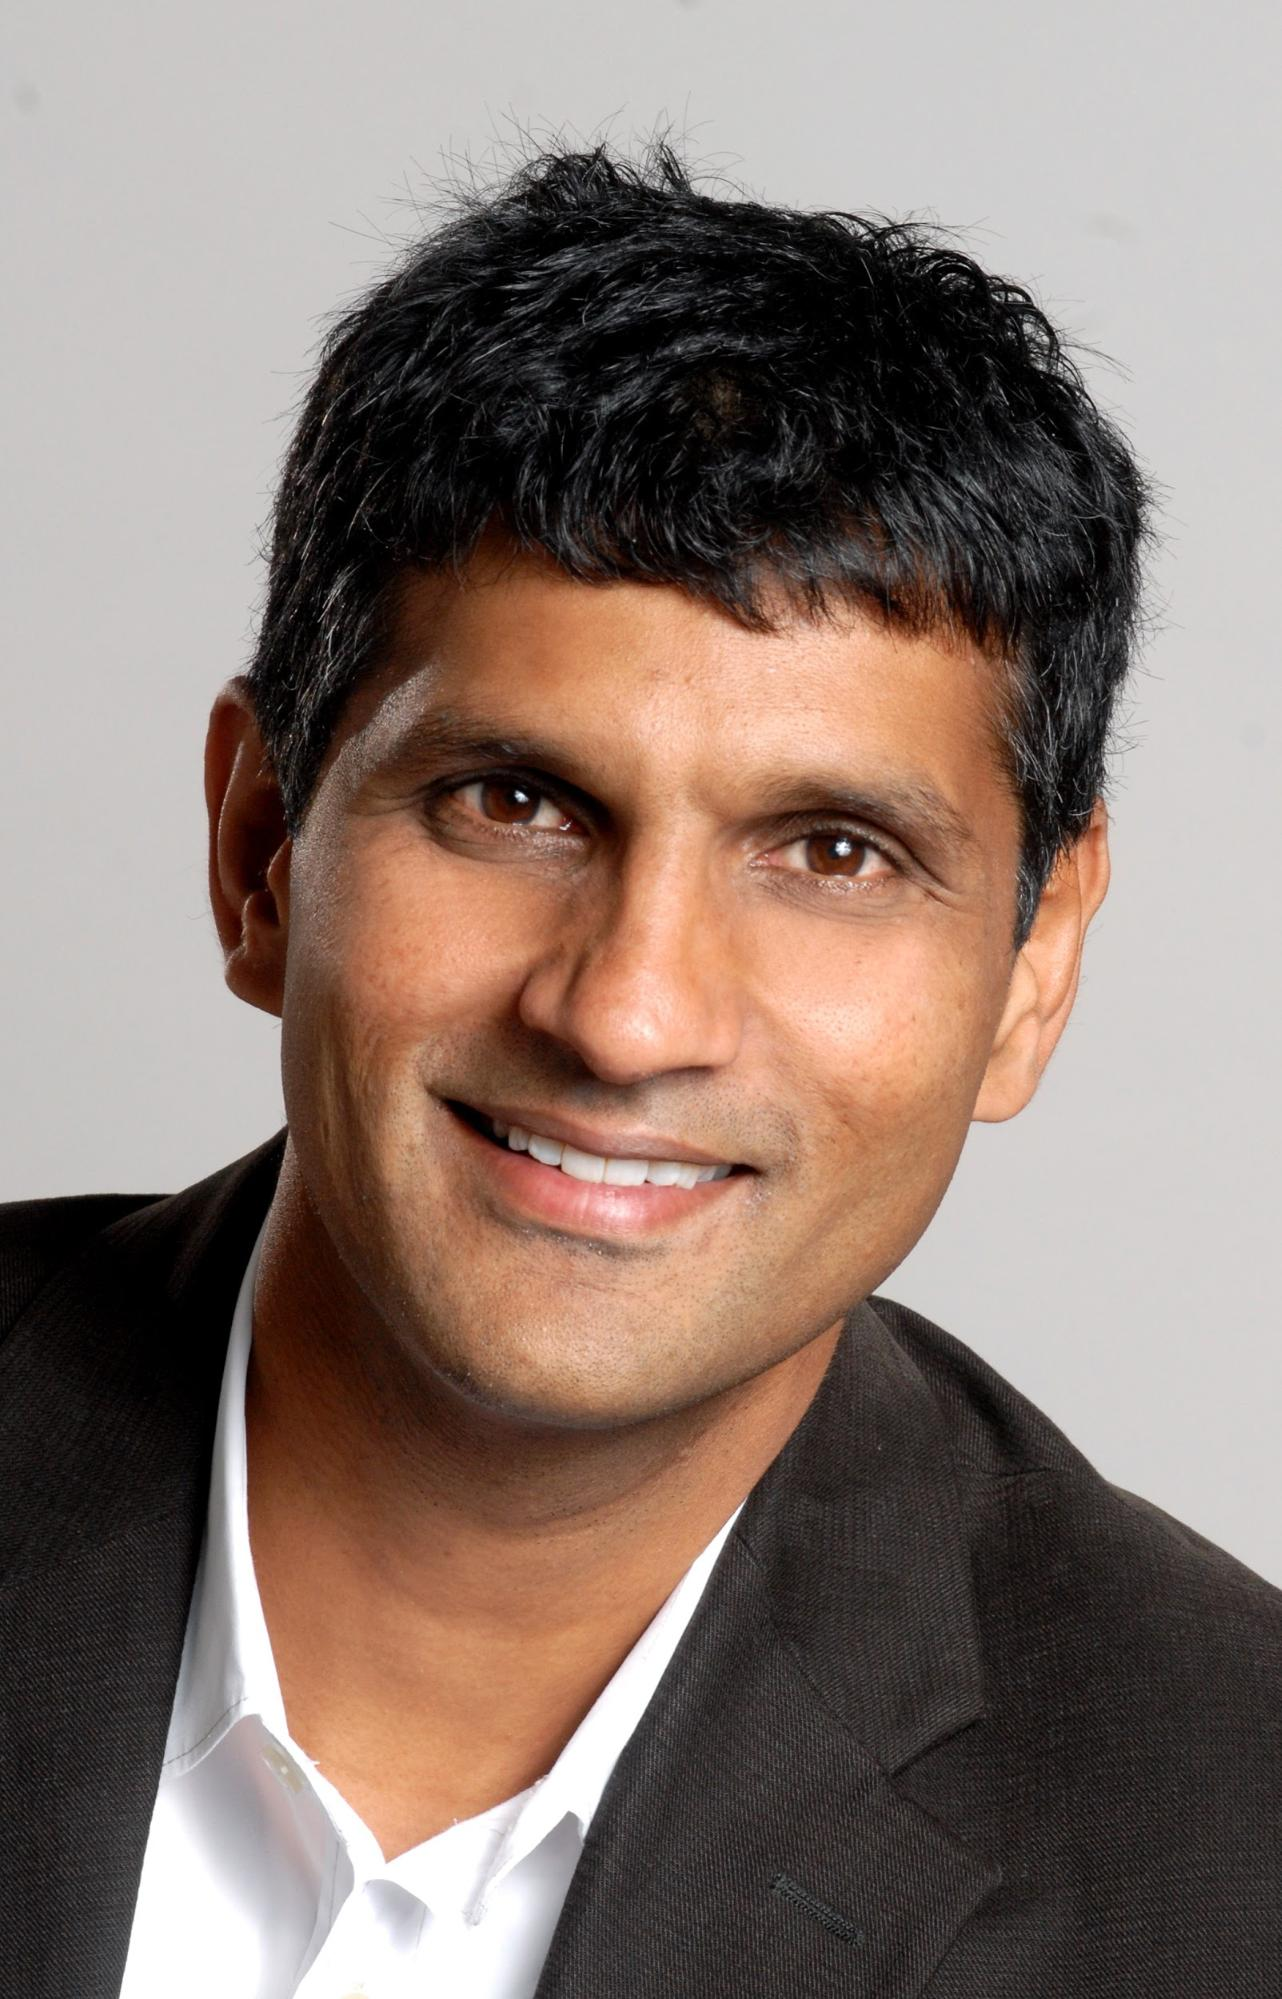 Headshot of Satish Rao